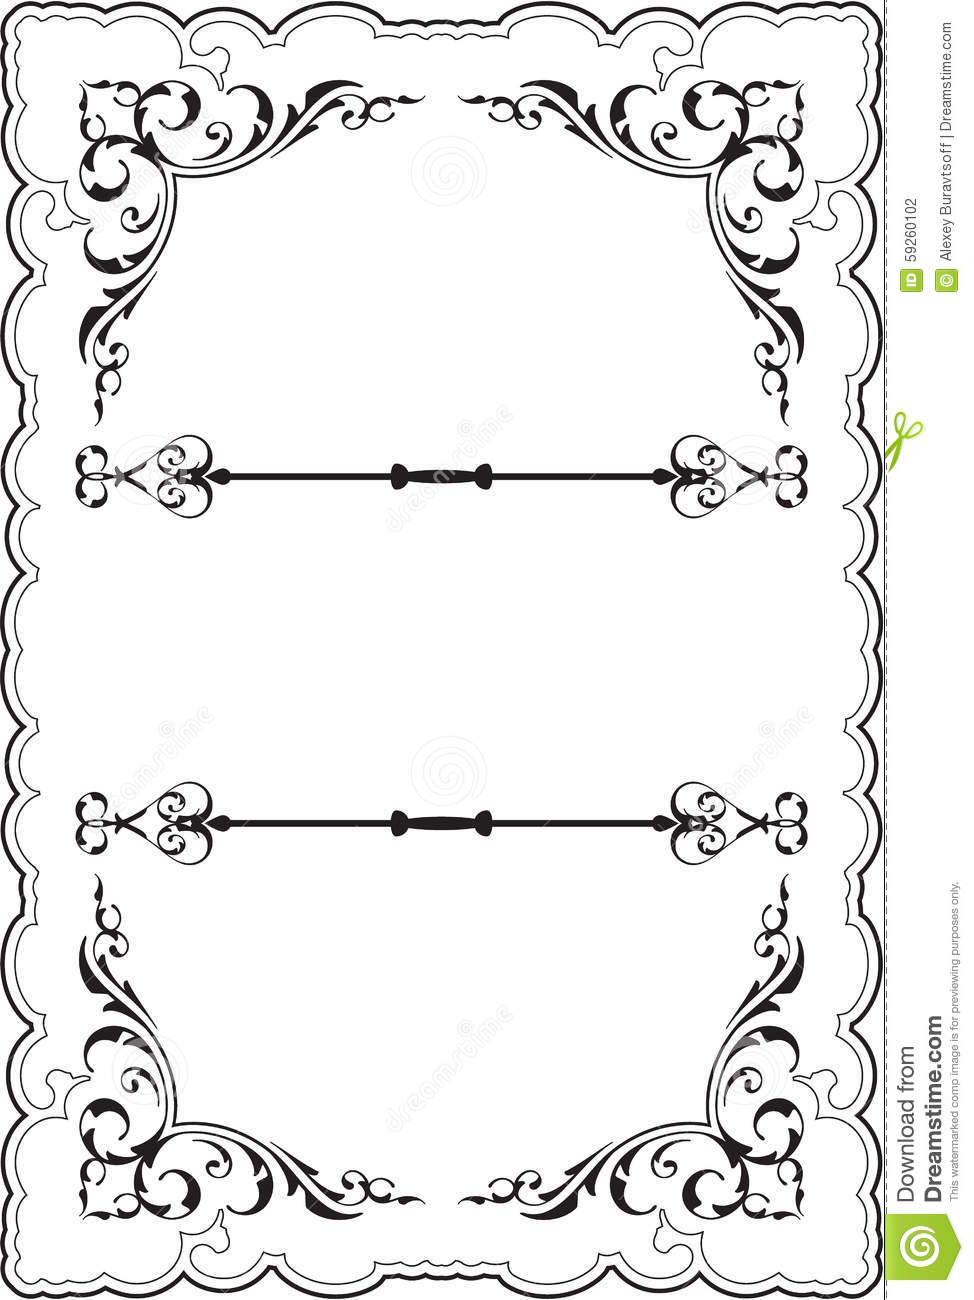 Scrolling Ornate Perfect Frame Stock Vector - Illustration of ...